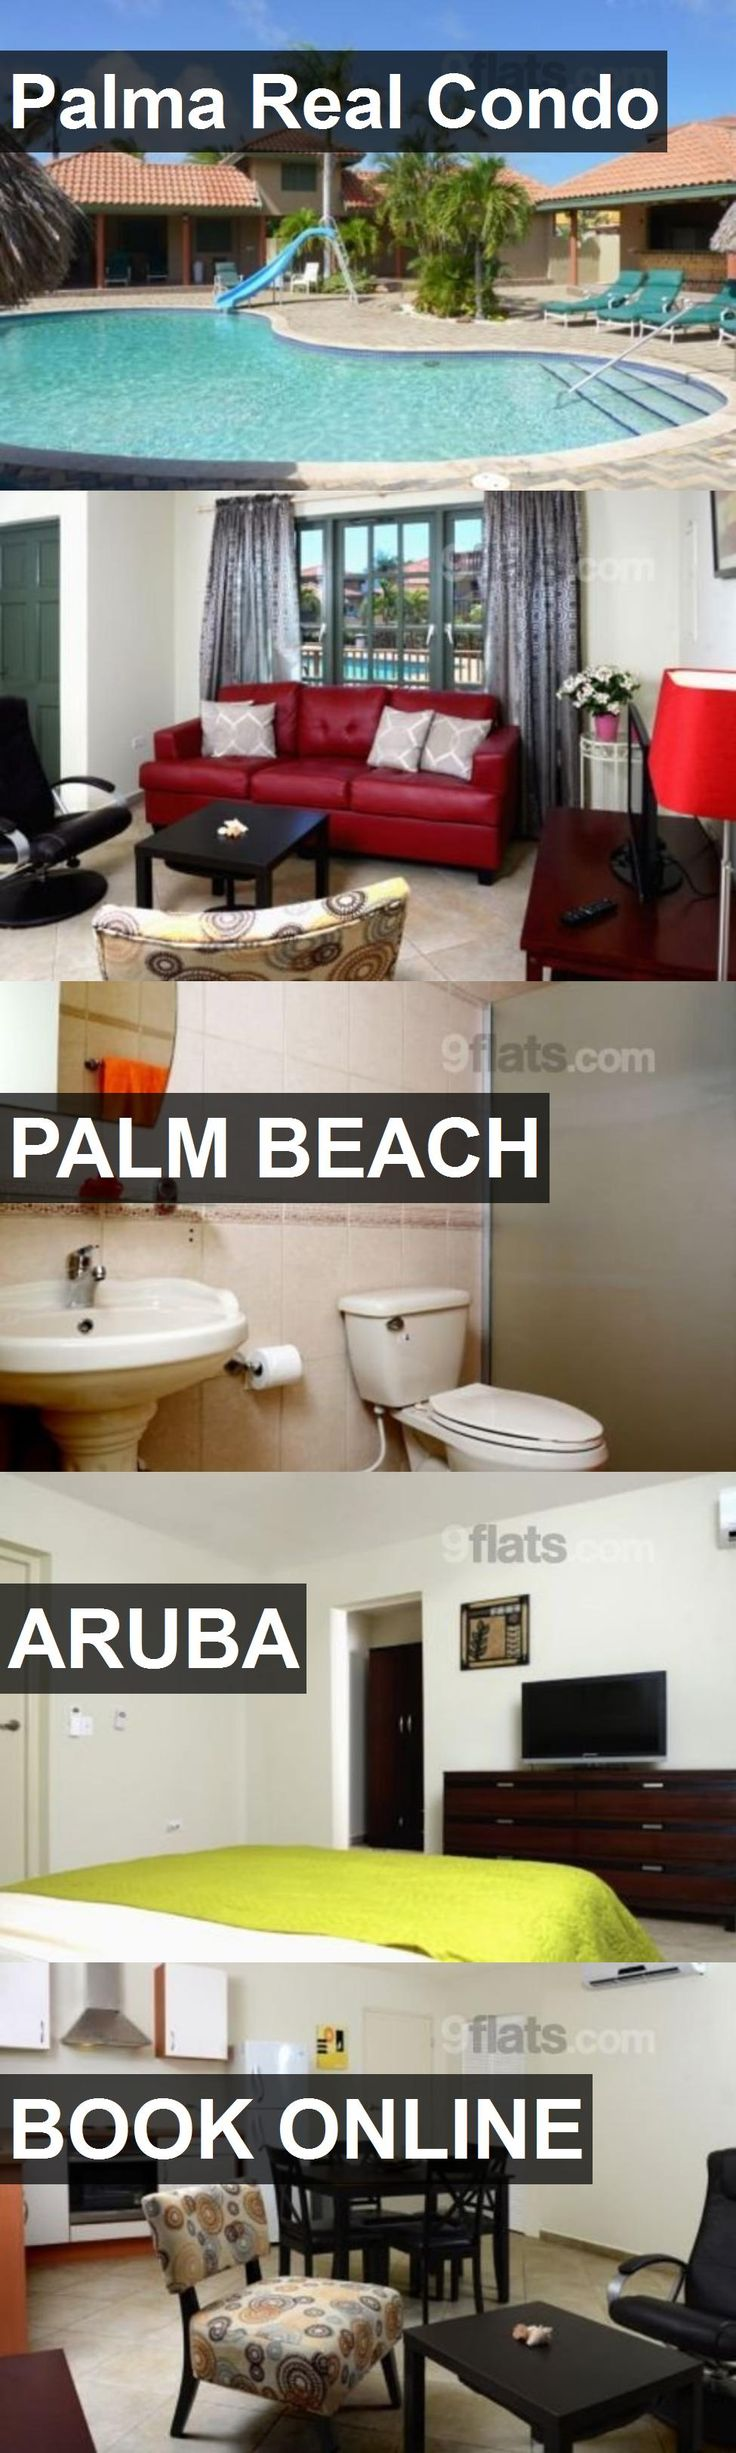 Hotel Palma Real Condo in Palm Beach, Aruba. For more information, photos, reviews and best prices please follow the link. #Aruba #PalmBeach #travel #vacation #hotel